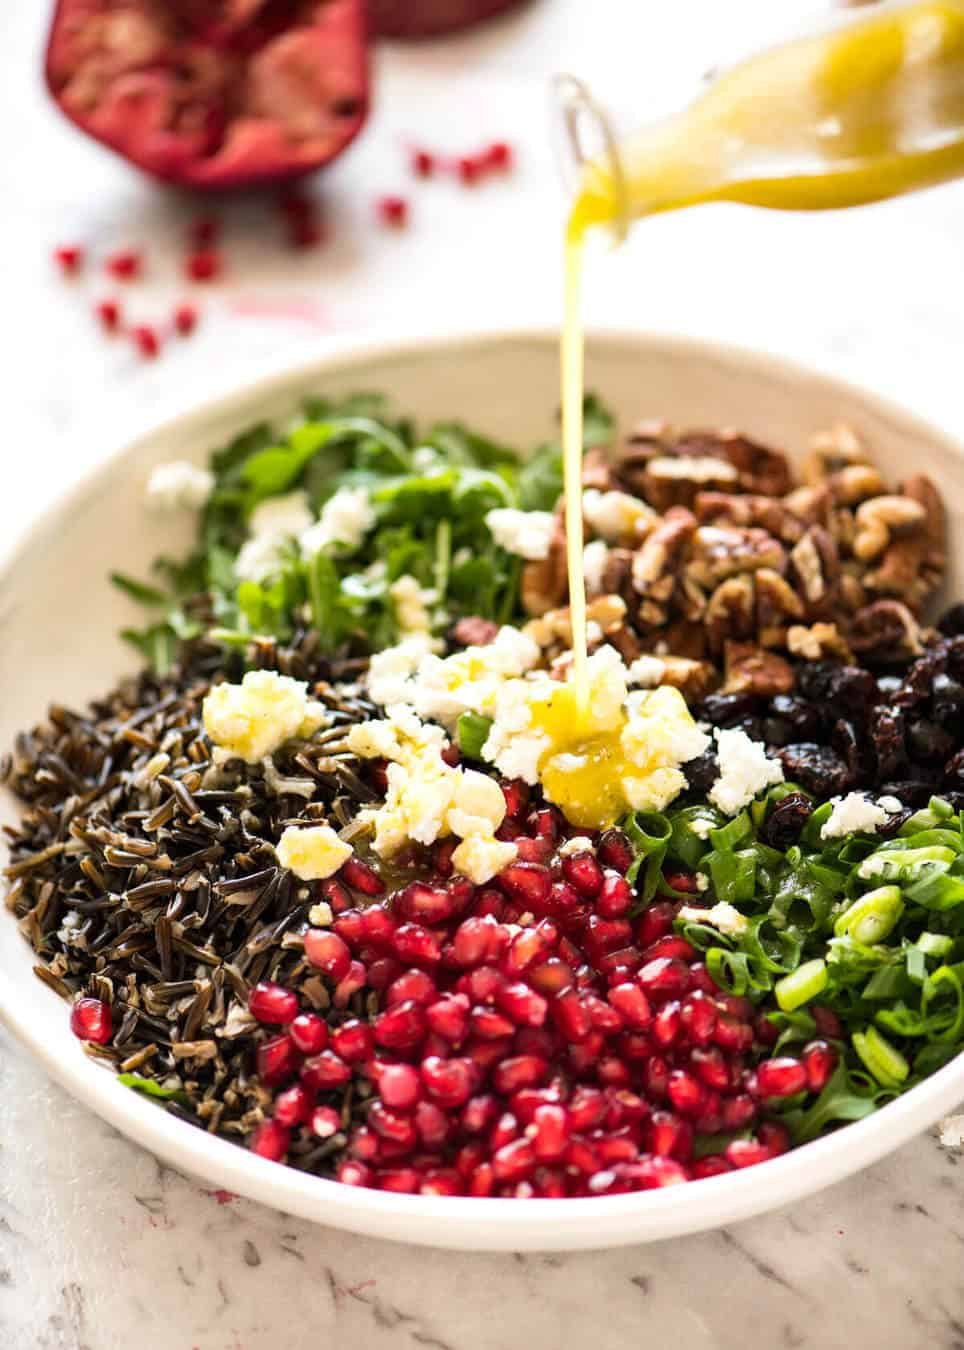 A simple white wine vinaigrette is the perfect Wild Rice Salad dressing. www.recipetineats.com